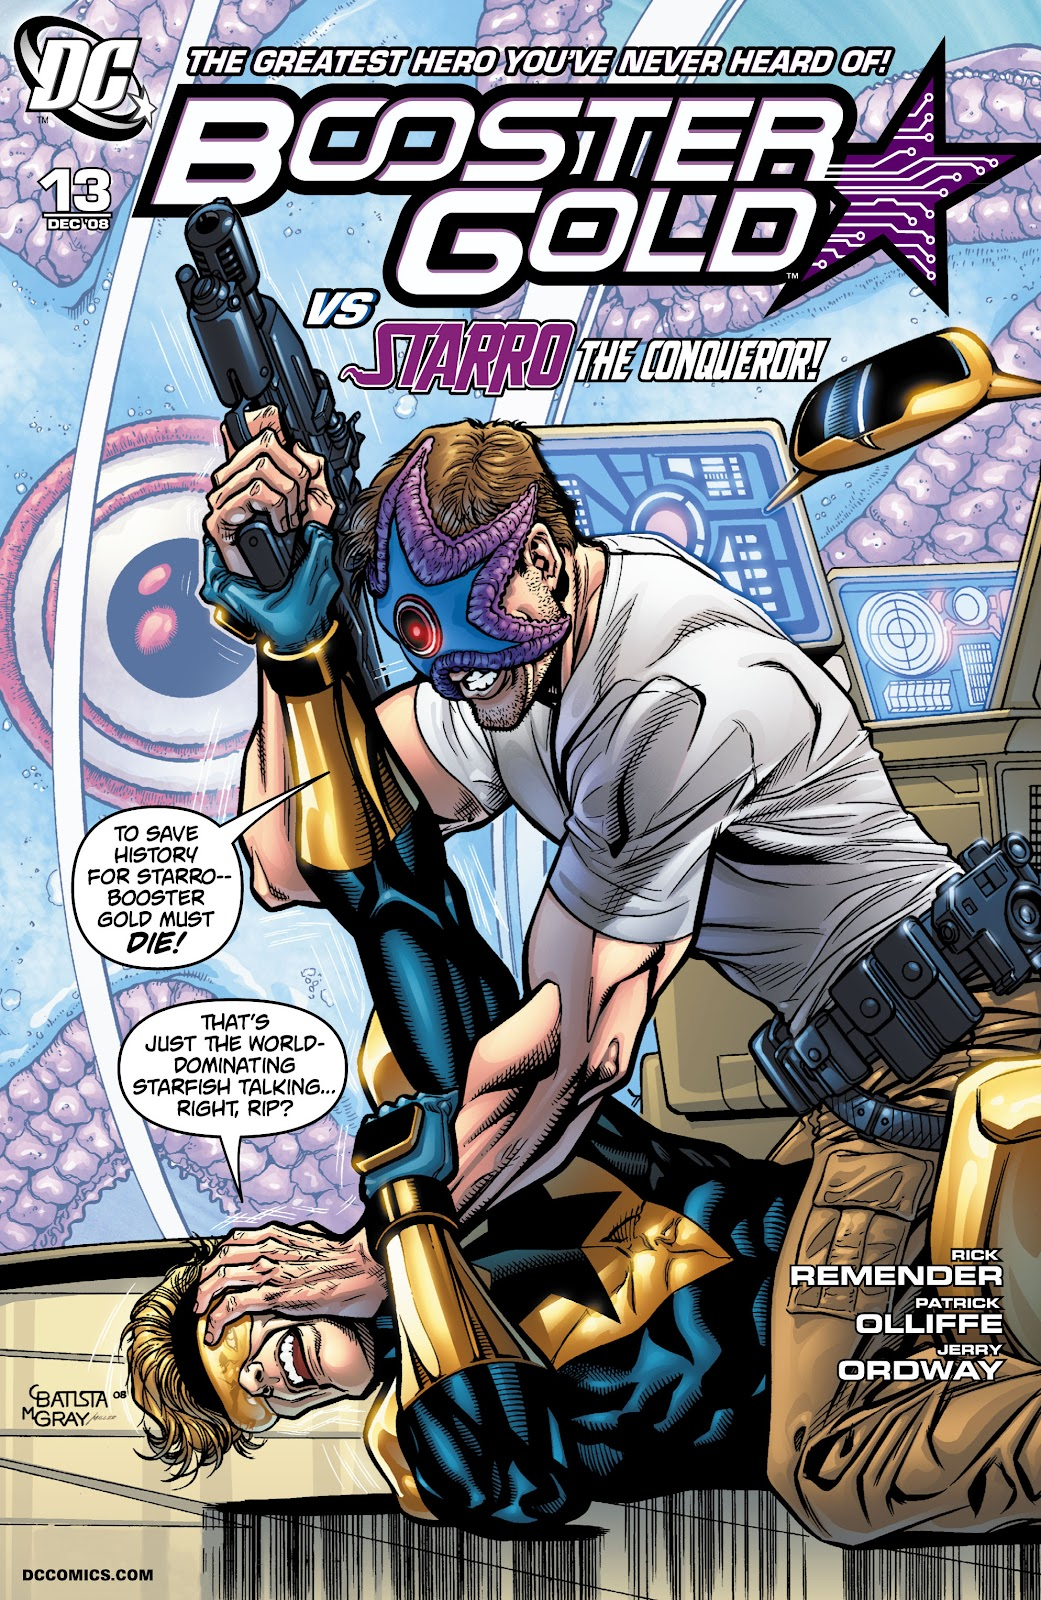 Booster Gold (2007) issue 13 - Page 1